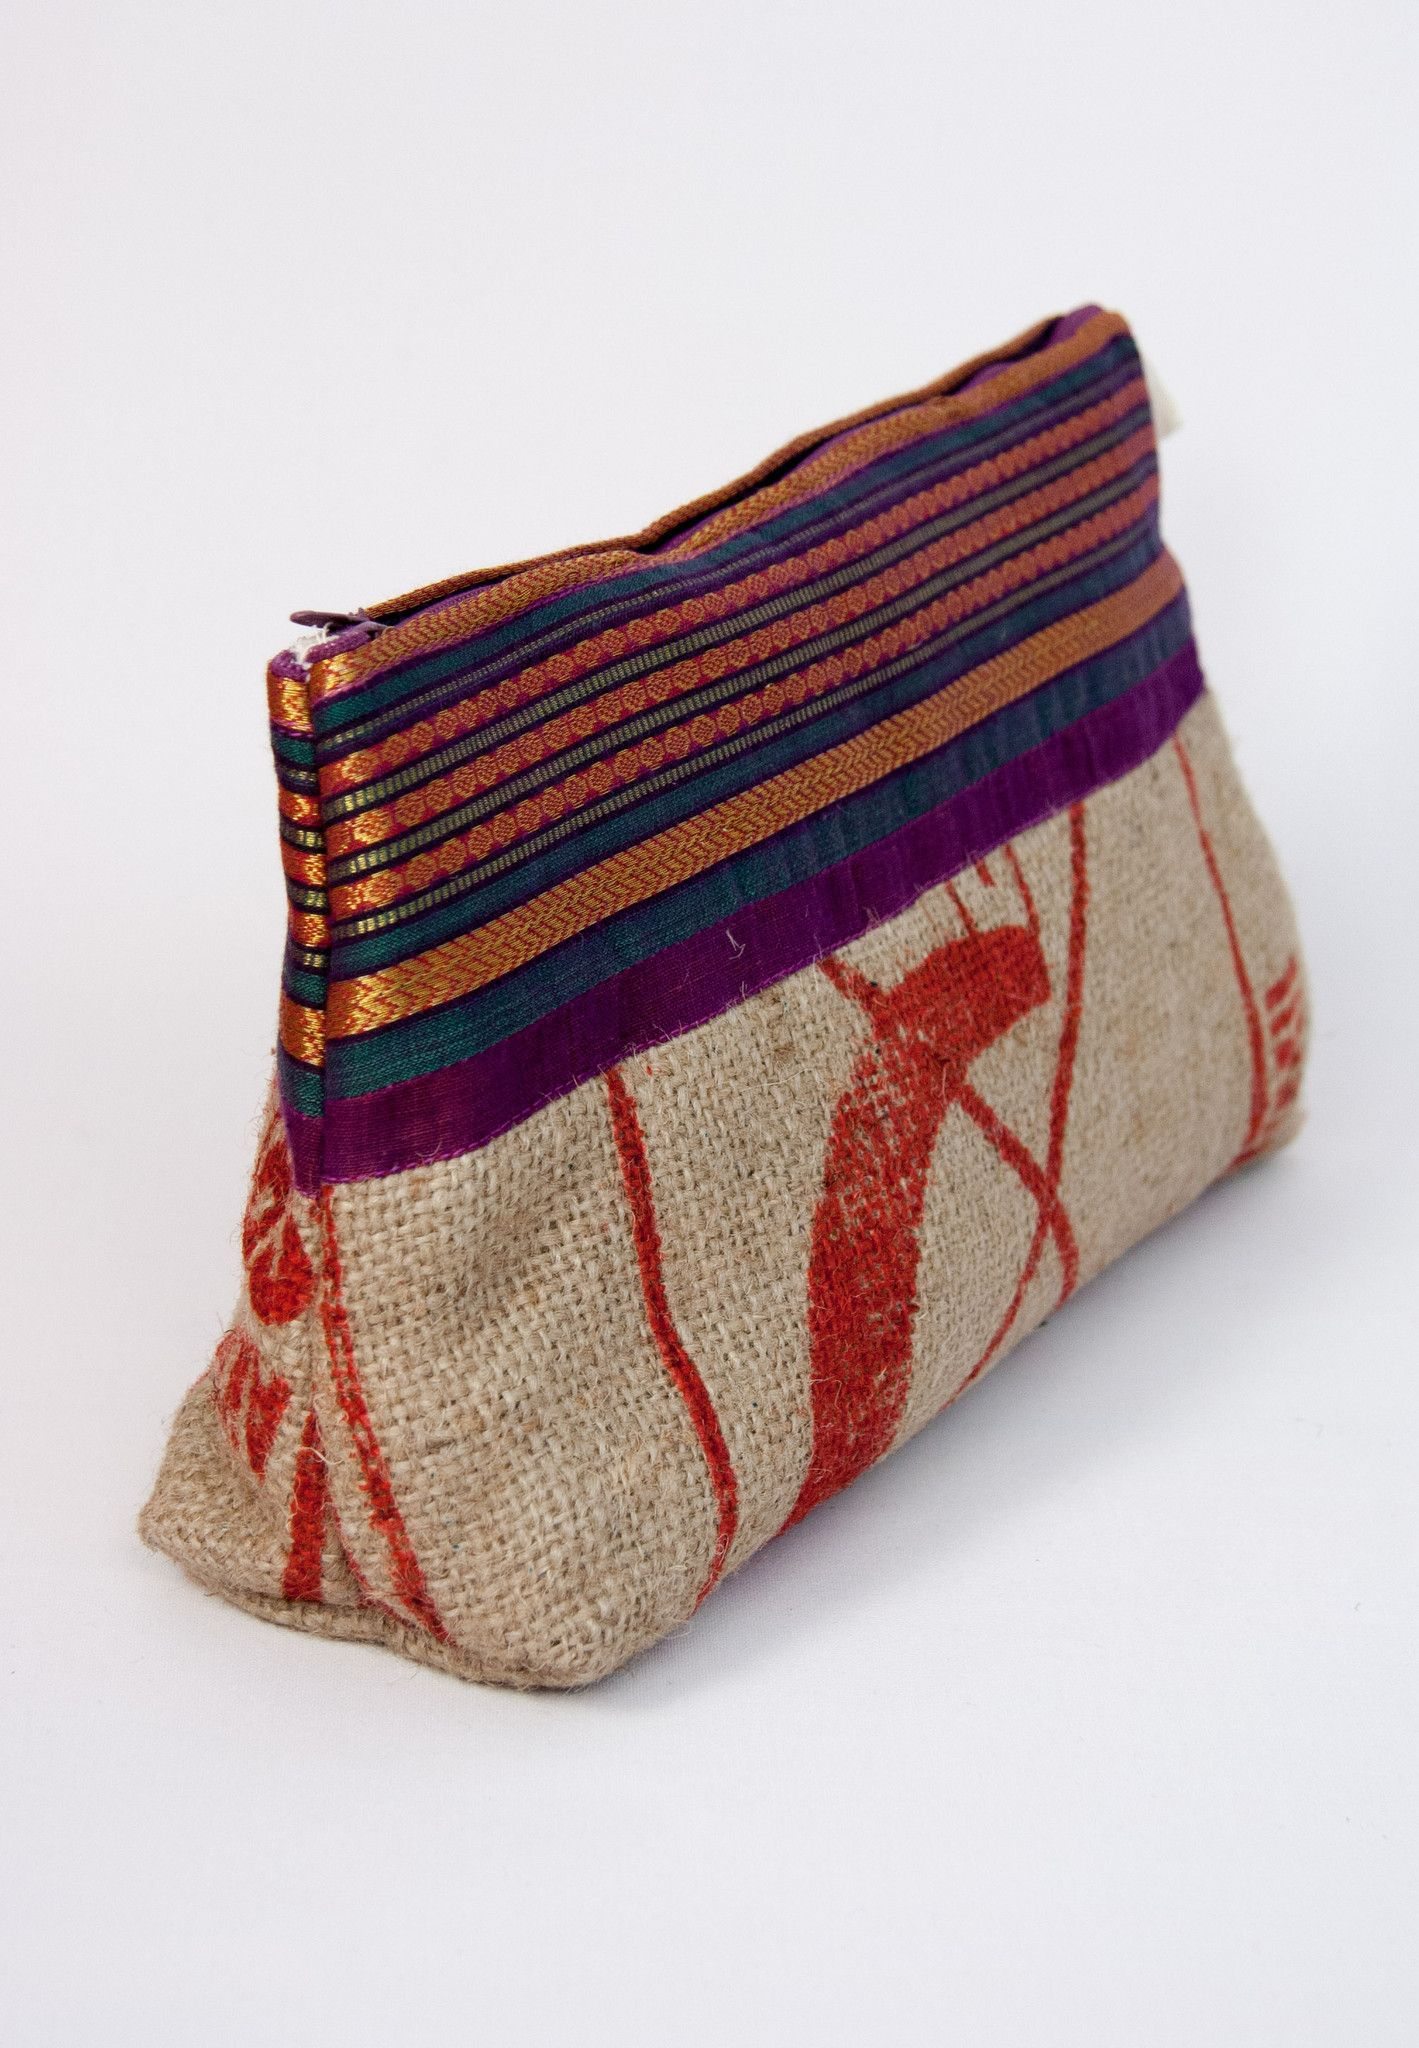 Recycled rice bag purse - Toiletry Bag Ganges Recycled Rice Bags And Sari 50 Silk